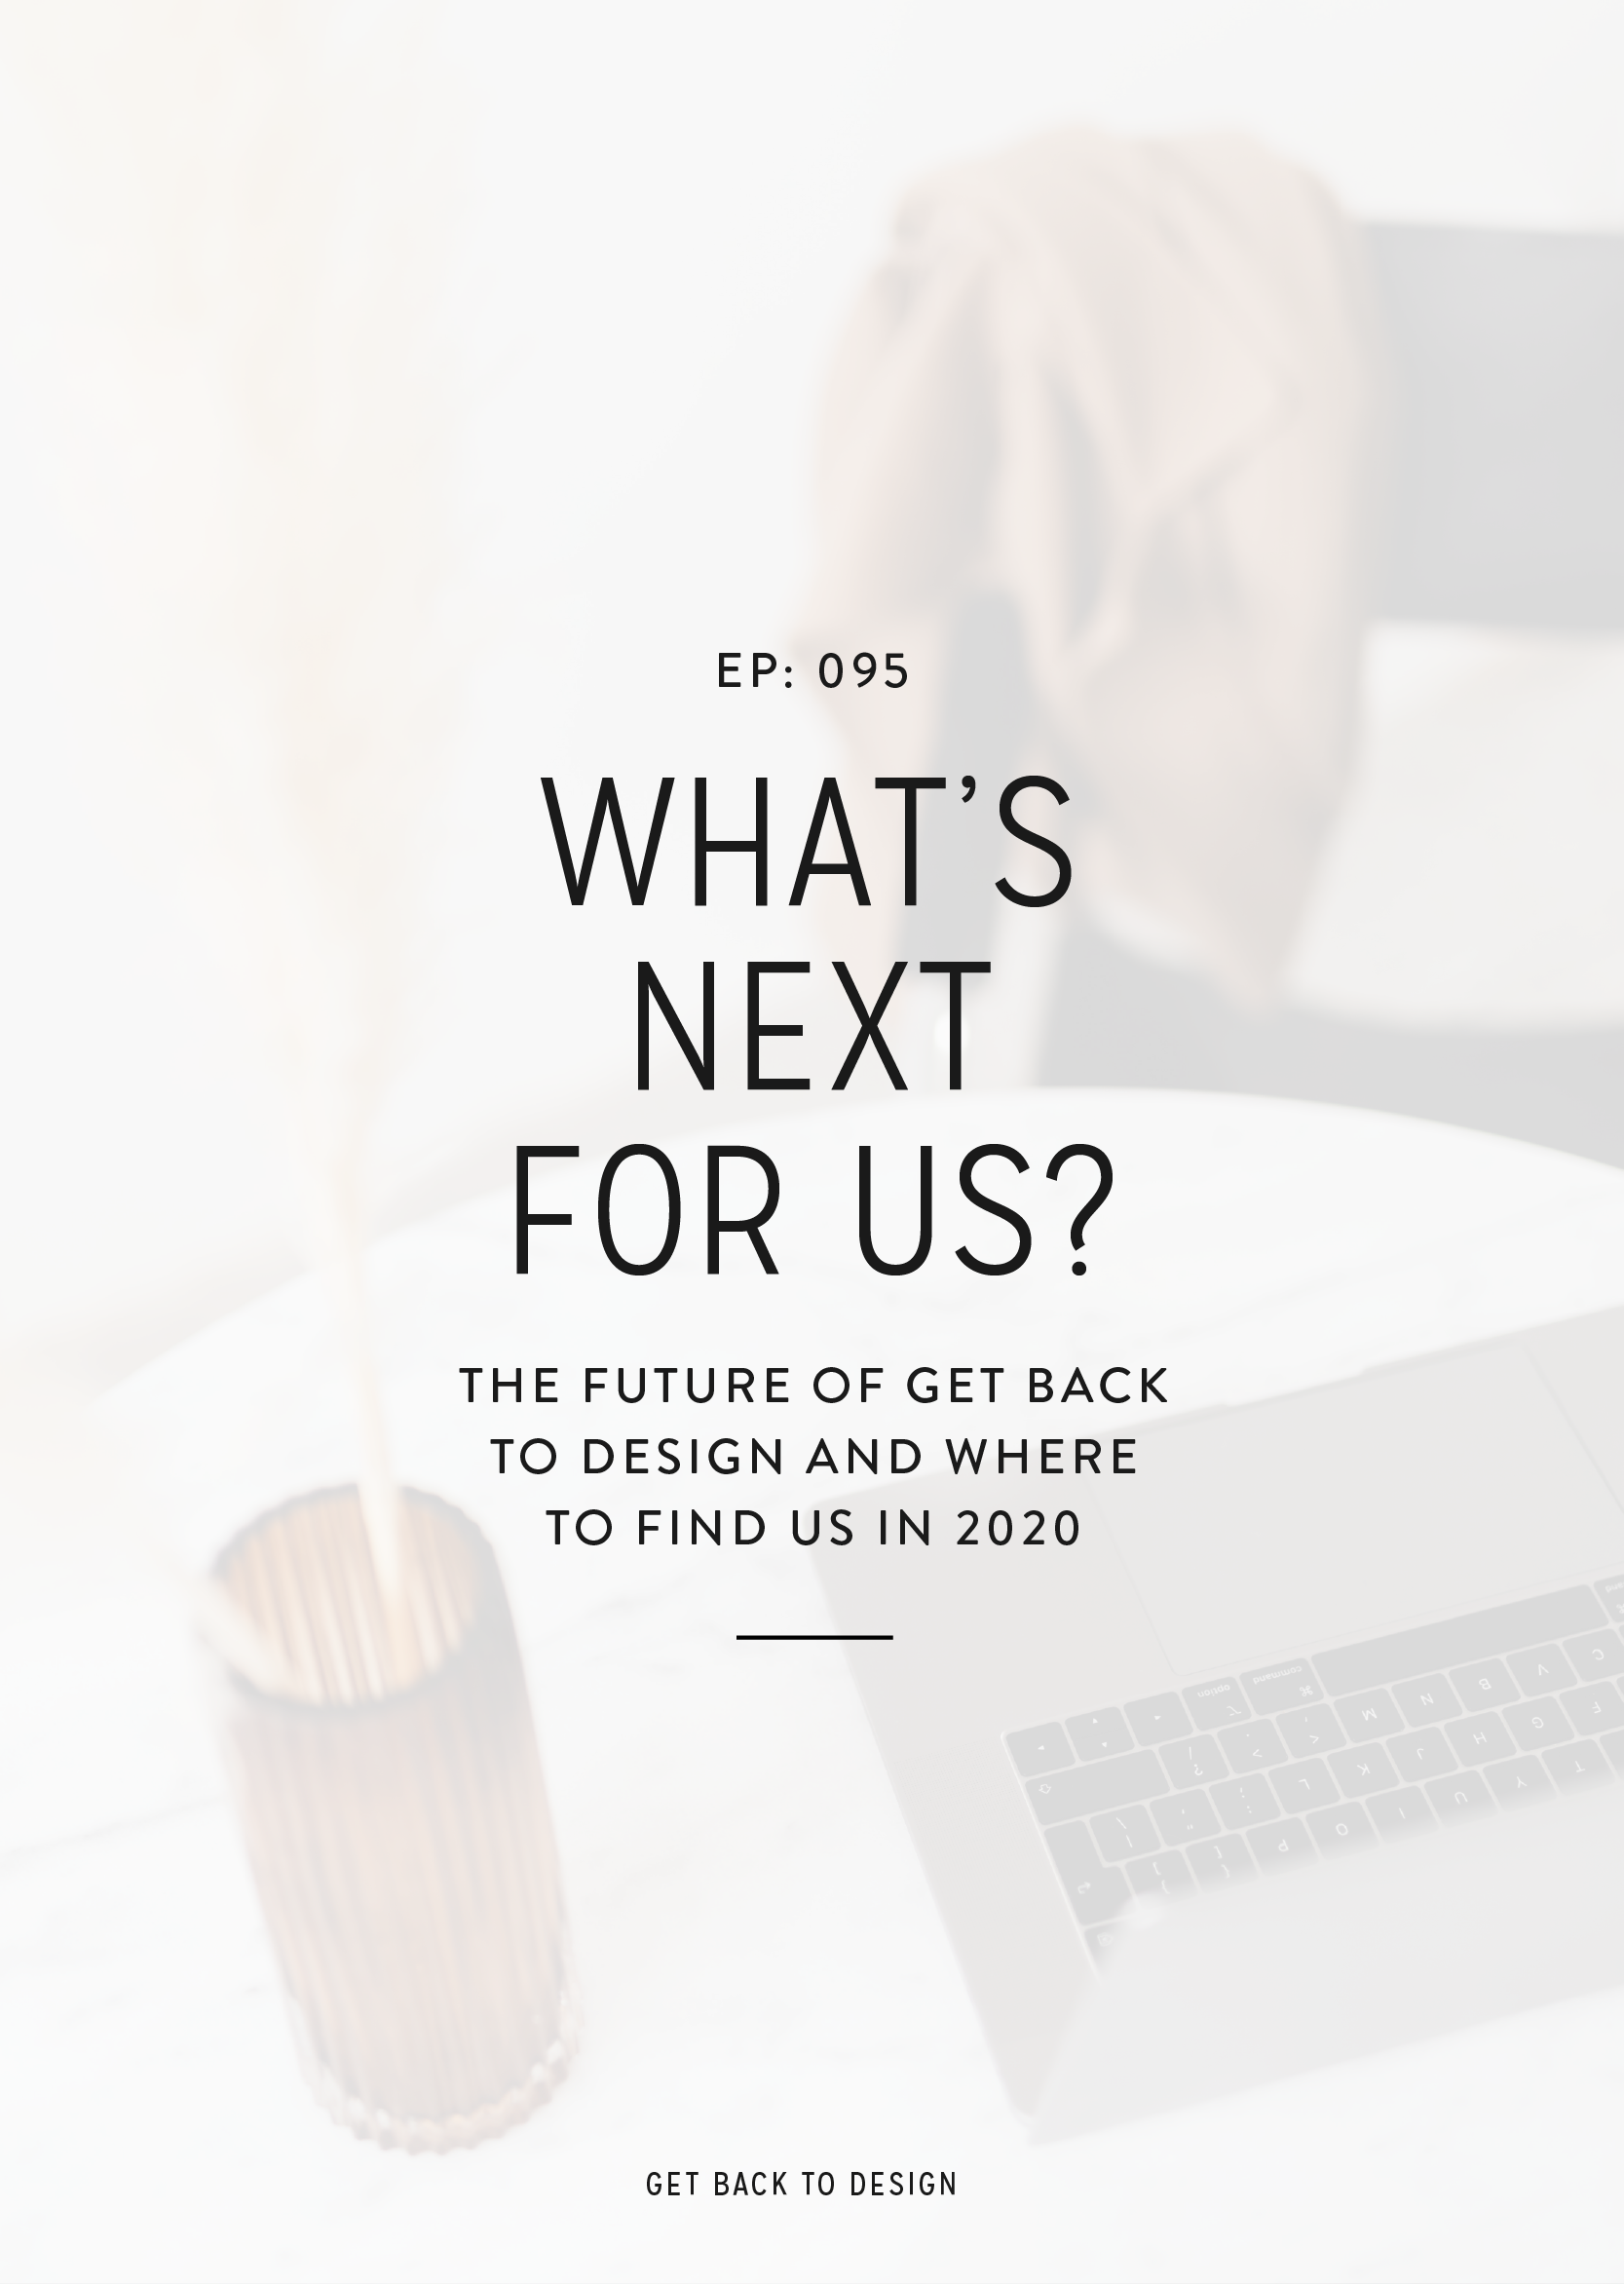 This week marks the closing of a chapter here at Get Back to Design. Listen in to learn more about the future of this podcast + what's next for us individually!